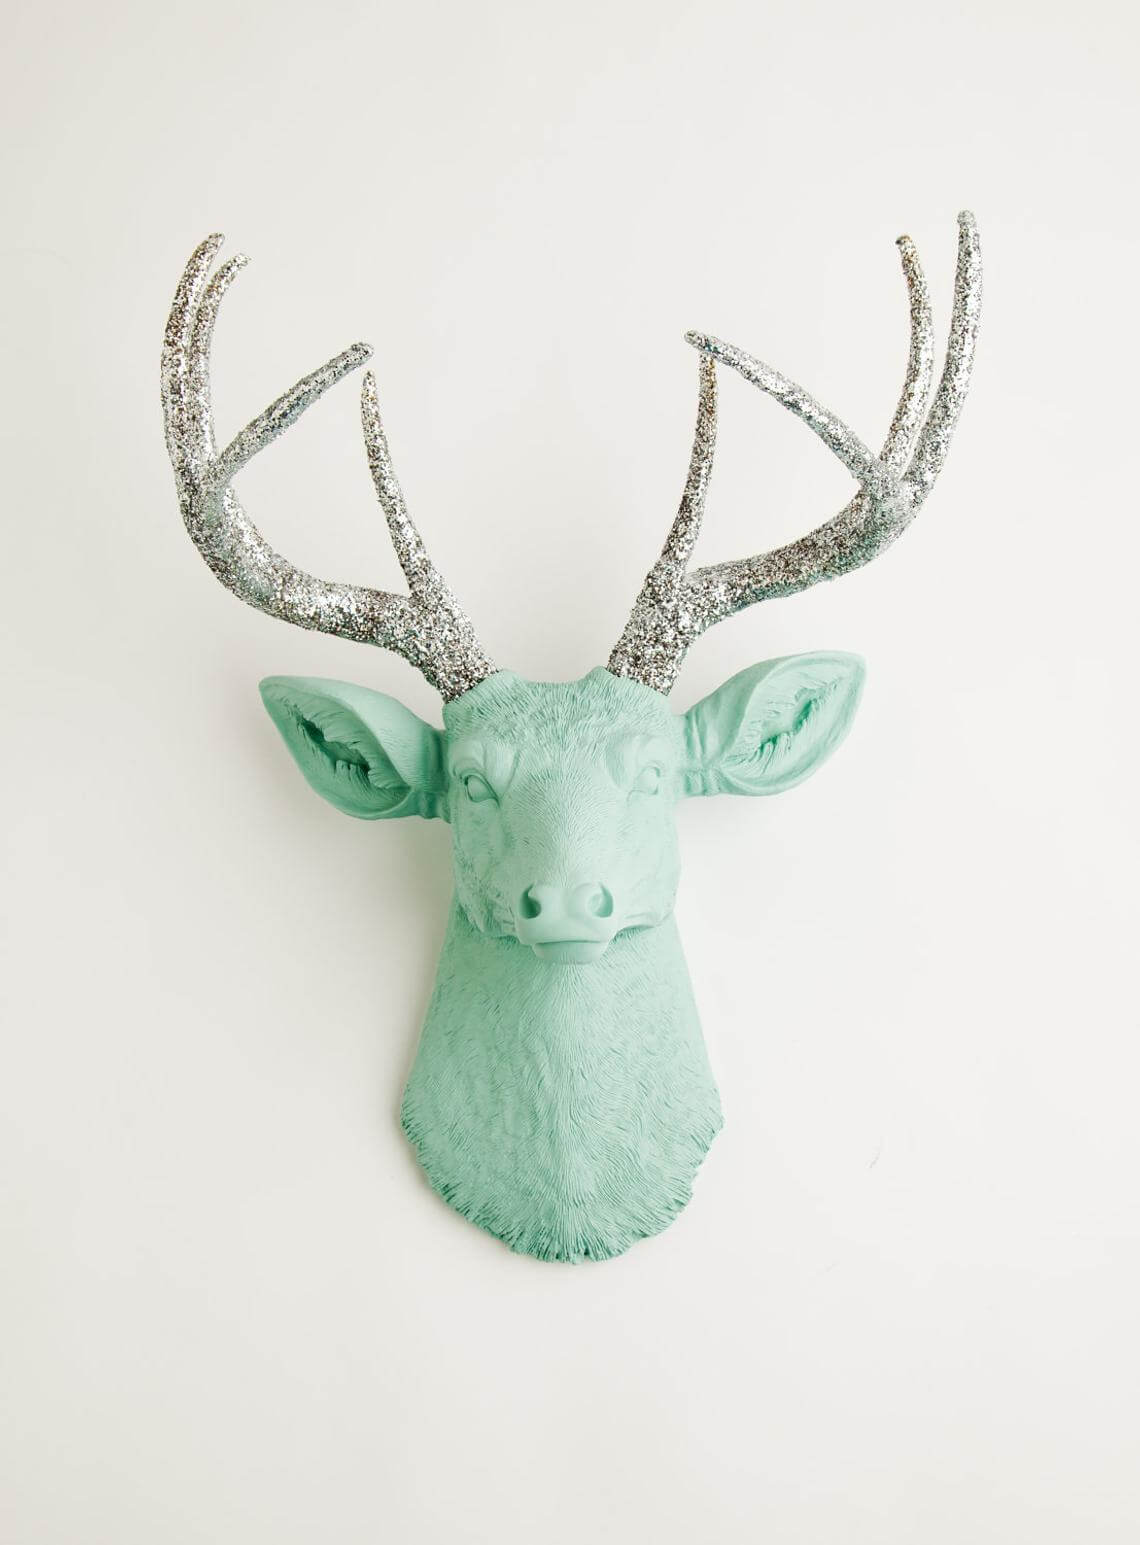 Mint Deer Head with Silver Glittered Antlers